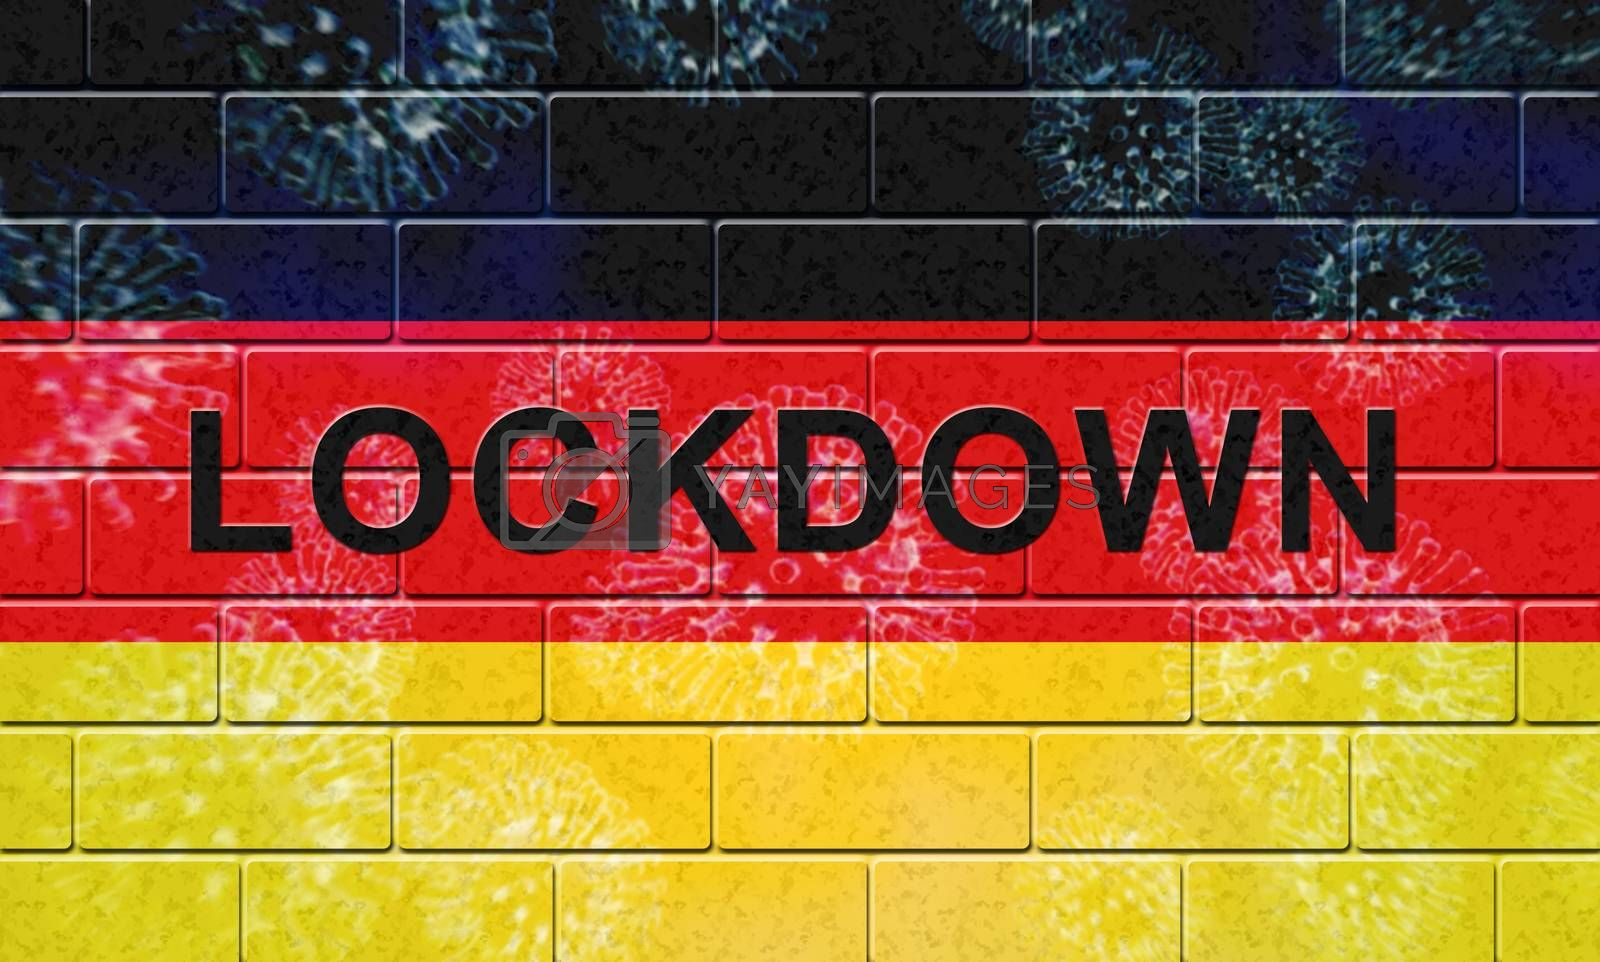 German lockdown stopping ncov epidemic or outbreak. Covid 19 Germany ban to isolate disease infection - 3d Illustration